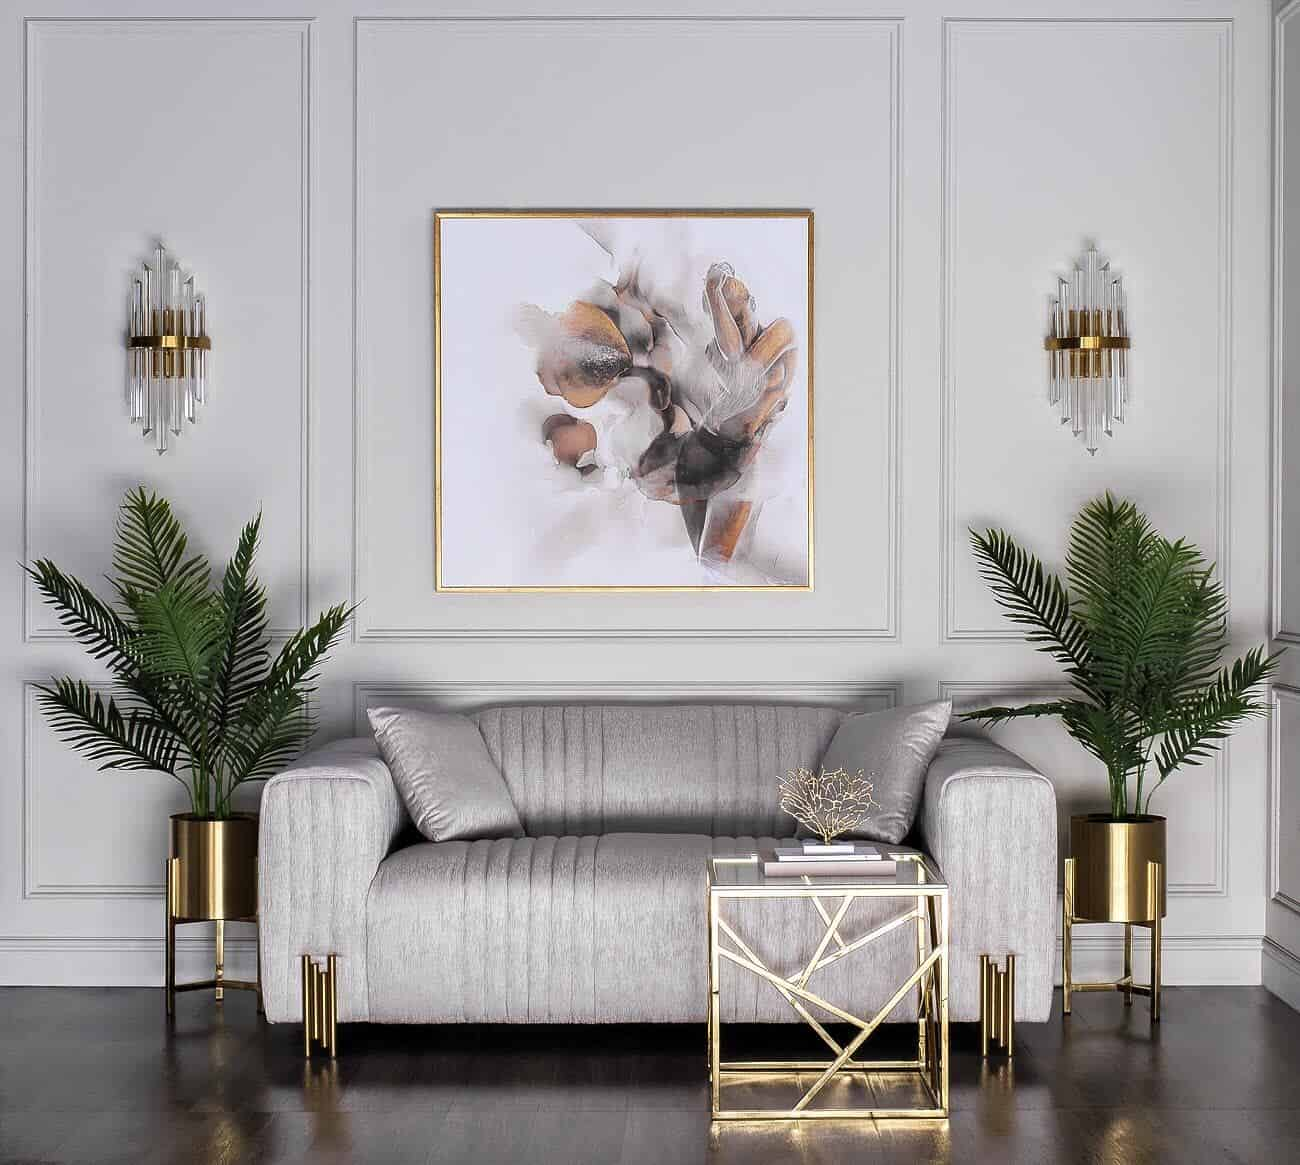 Small grey sofa with brass legs in front of grey panelled wall with plants either side in brass pots